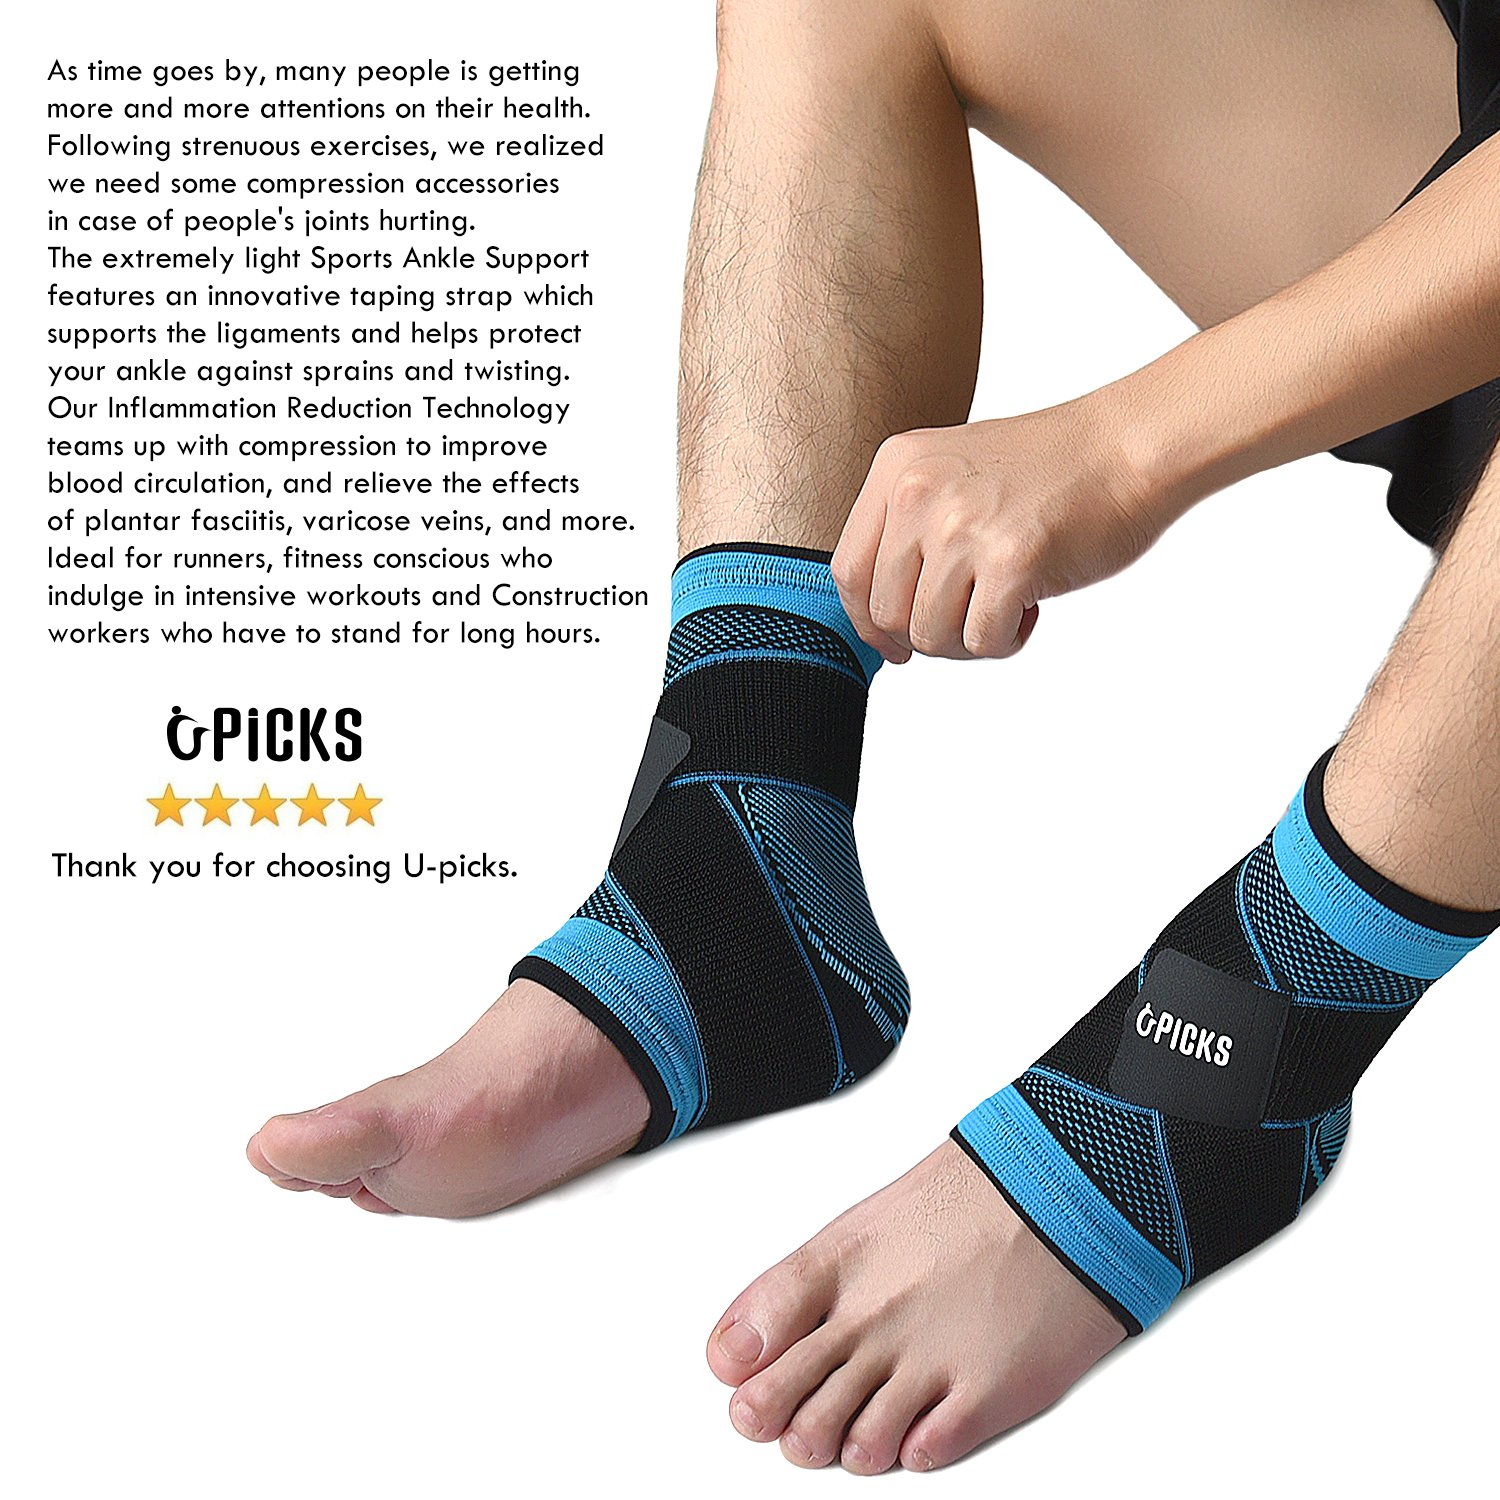 Plantar Fasciitis Sock with Arch Support, Eases Swelling, Achilles tendon & Ankle Brace Sleeve with Compression Effective Joint Pain Foot Pain Relief from Heel Spurs -Single by U-picks (Image #5)